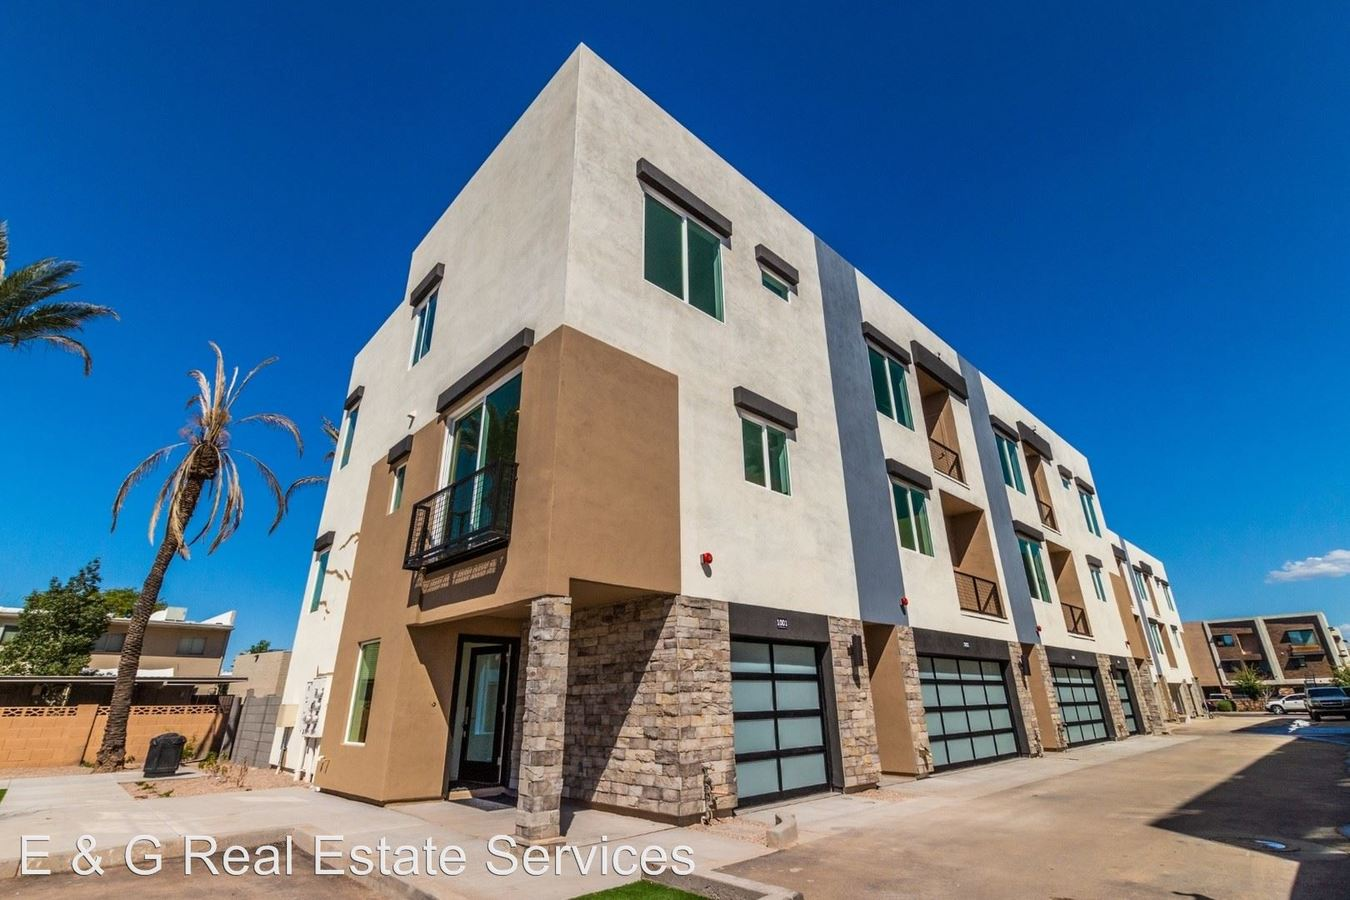 2 Bedrooms 3 Bathrooms Apartment for rent at 3214 N. 70th St in Scottsdale, AZ